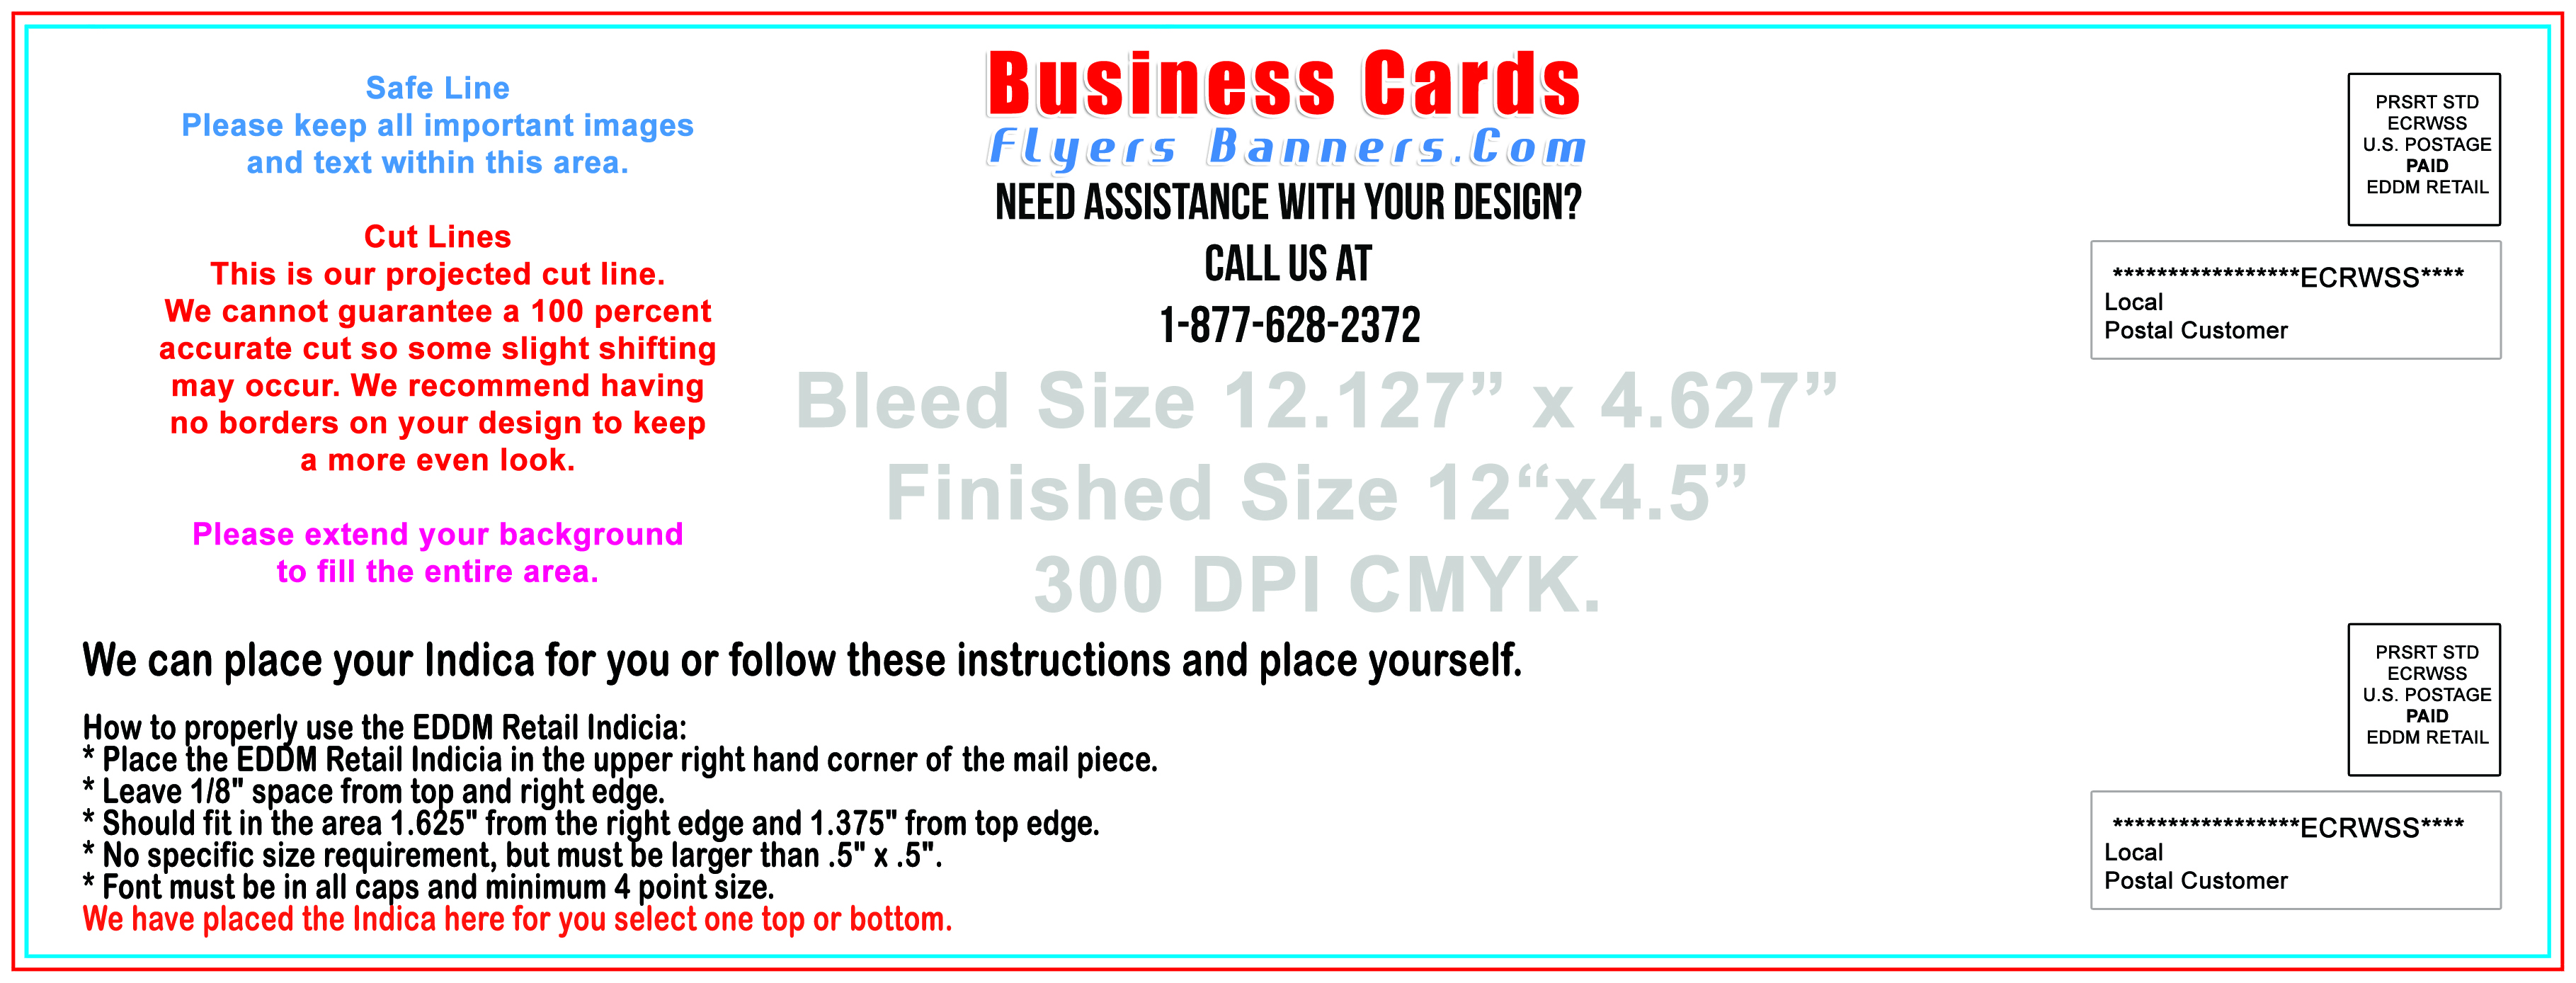 EDDM Postcard Templates Free Shipping And Low Prices - Eddm postcard template